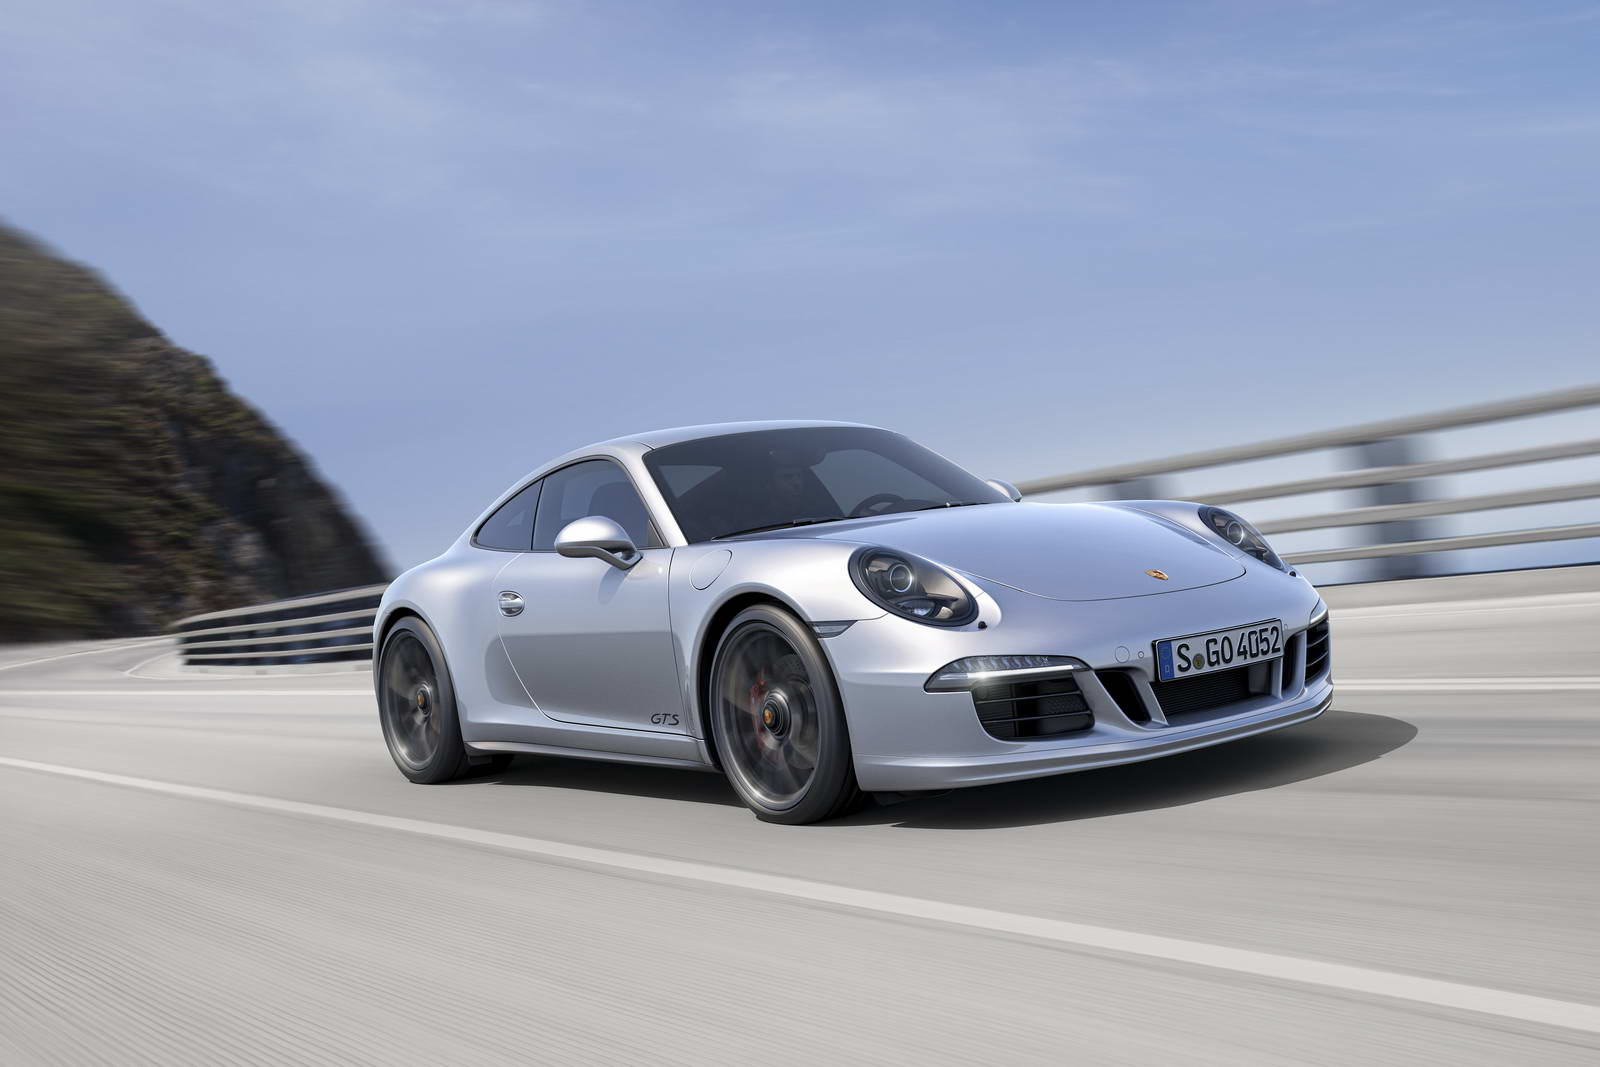 Confirmed 2017 Porsche 911 Gts Facelift Coming With 3 0